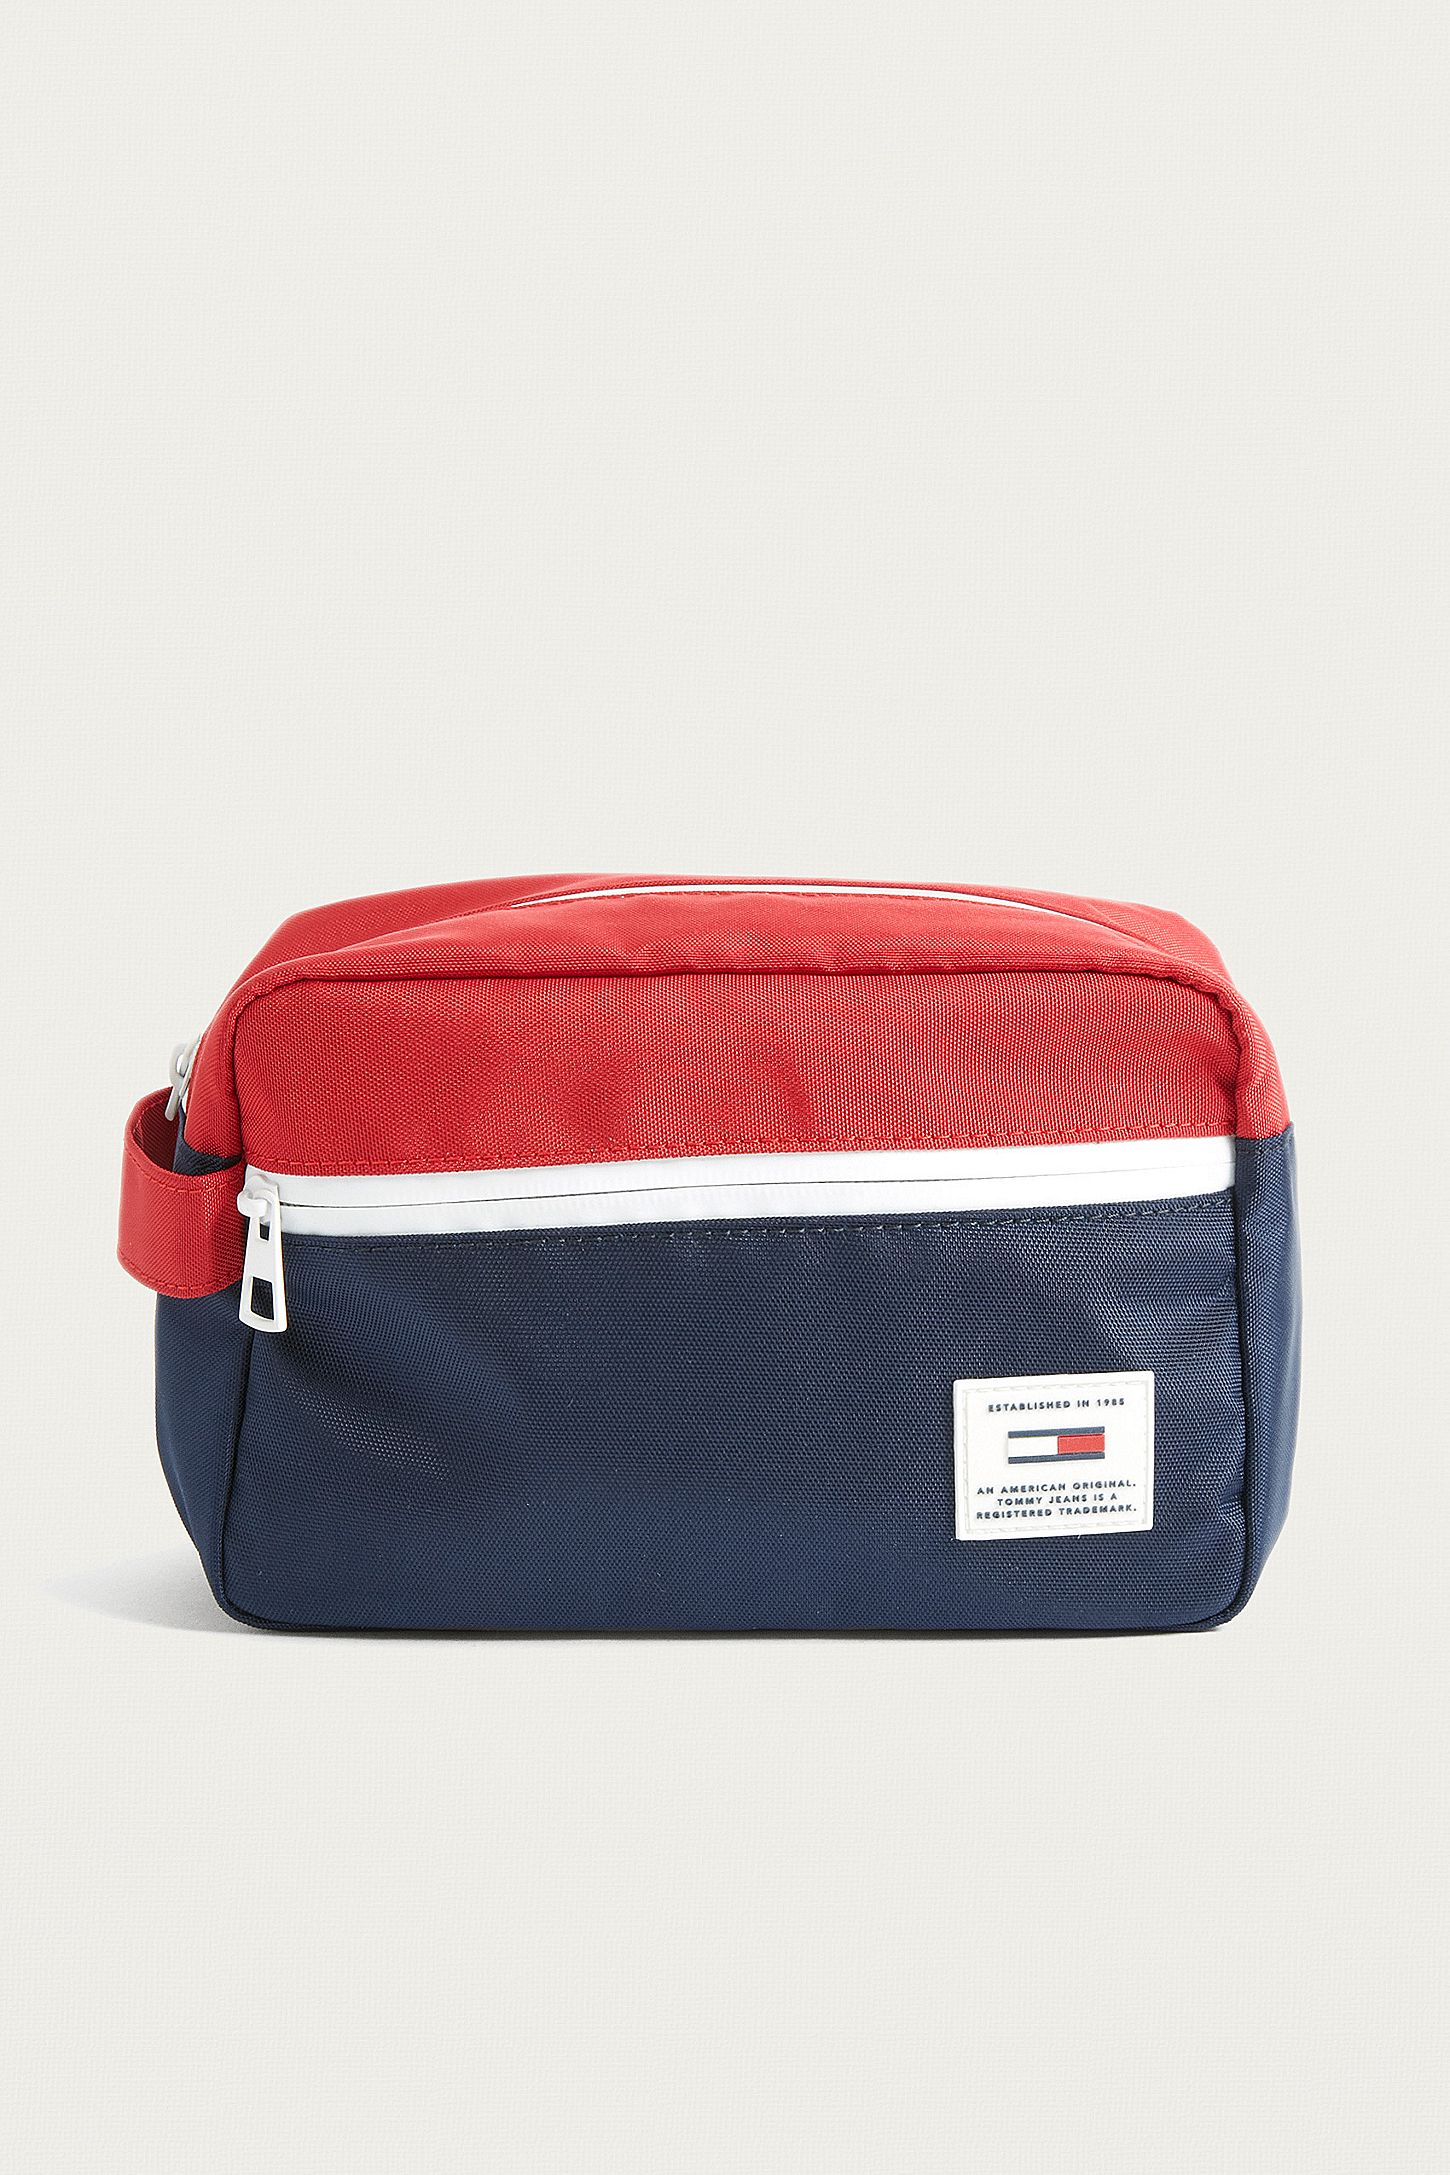 2dc6a20f22c Tommy Jeans Original Wash Bag   Urban Outfitters UK